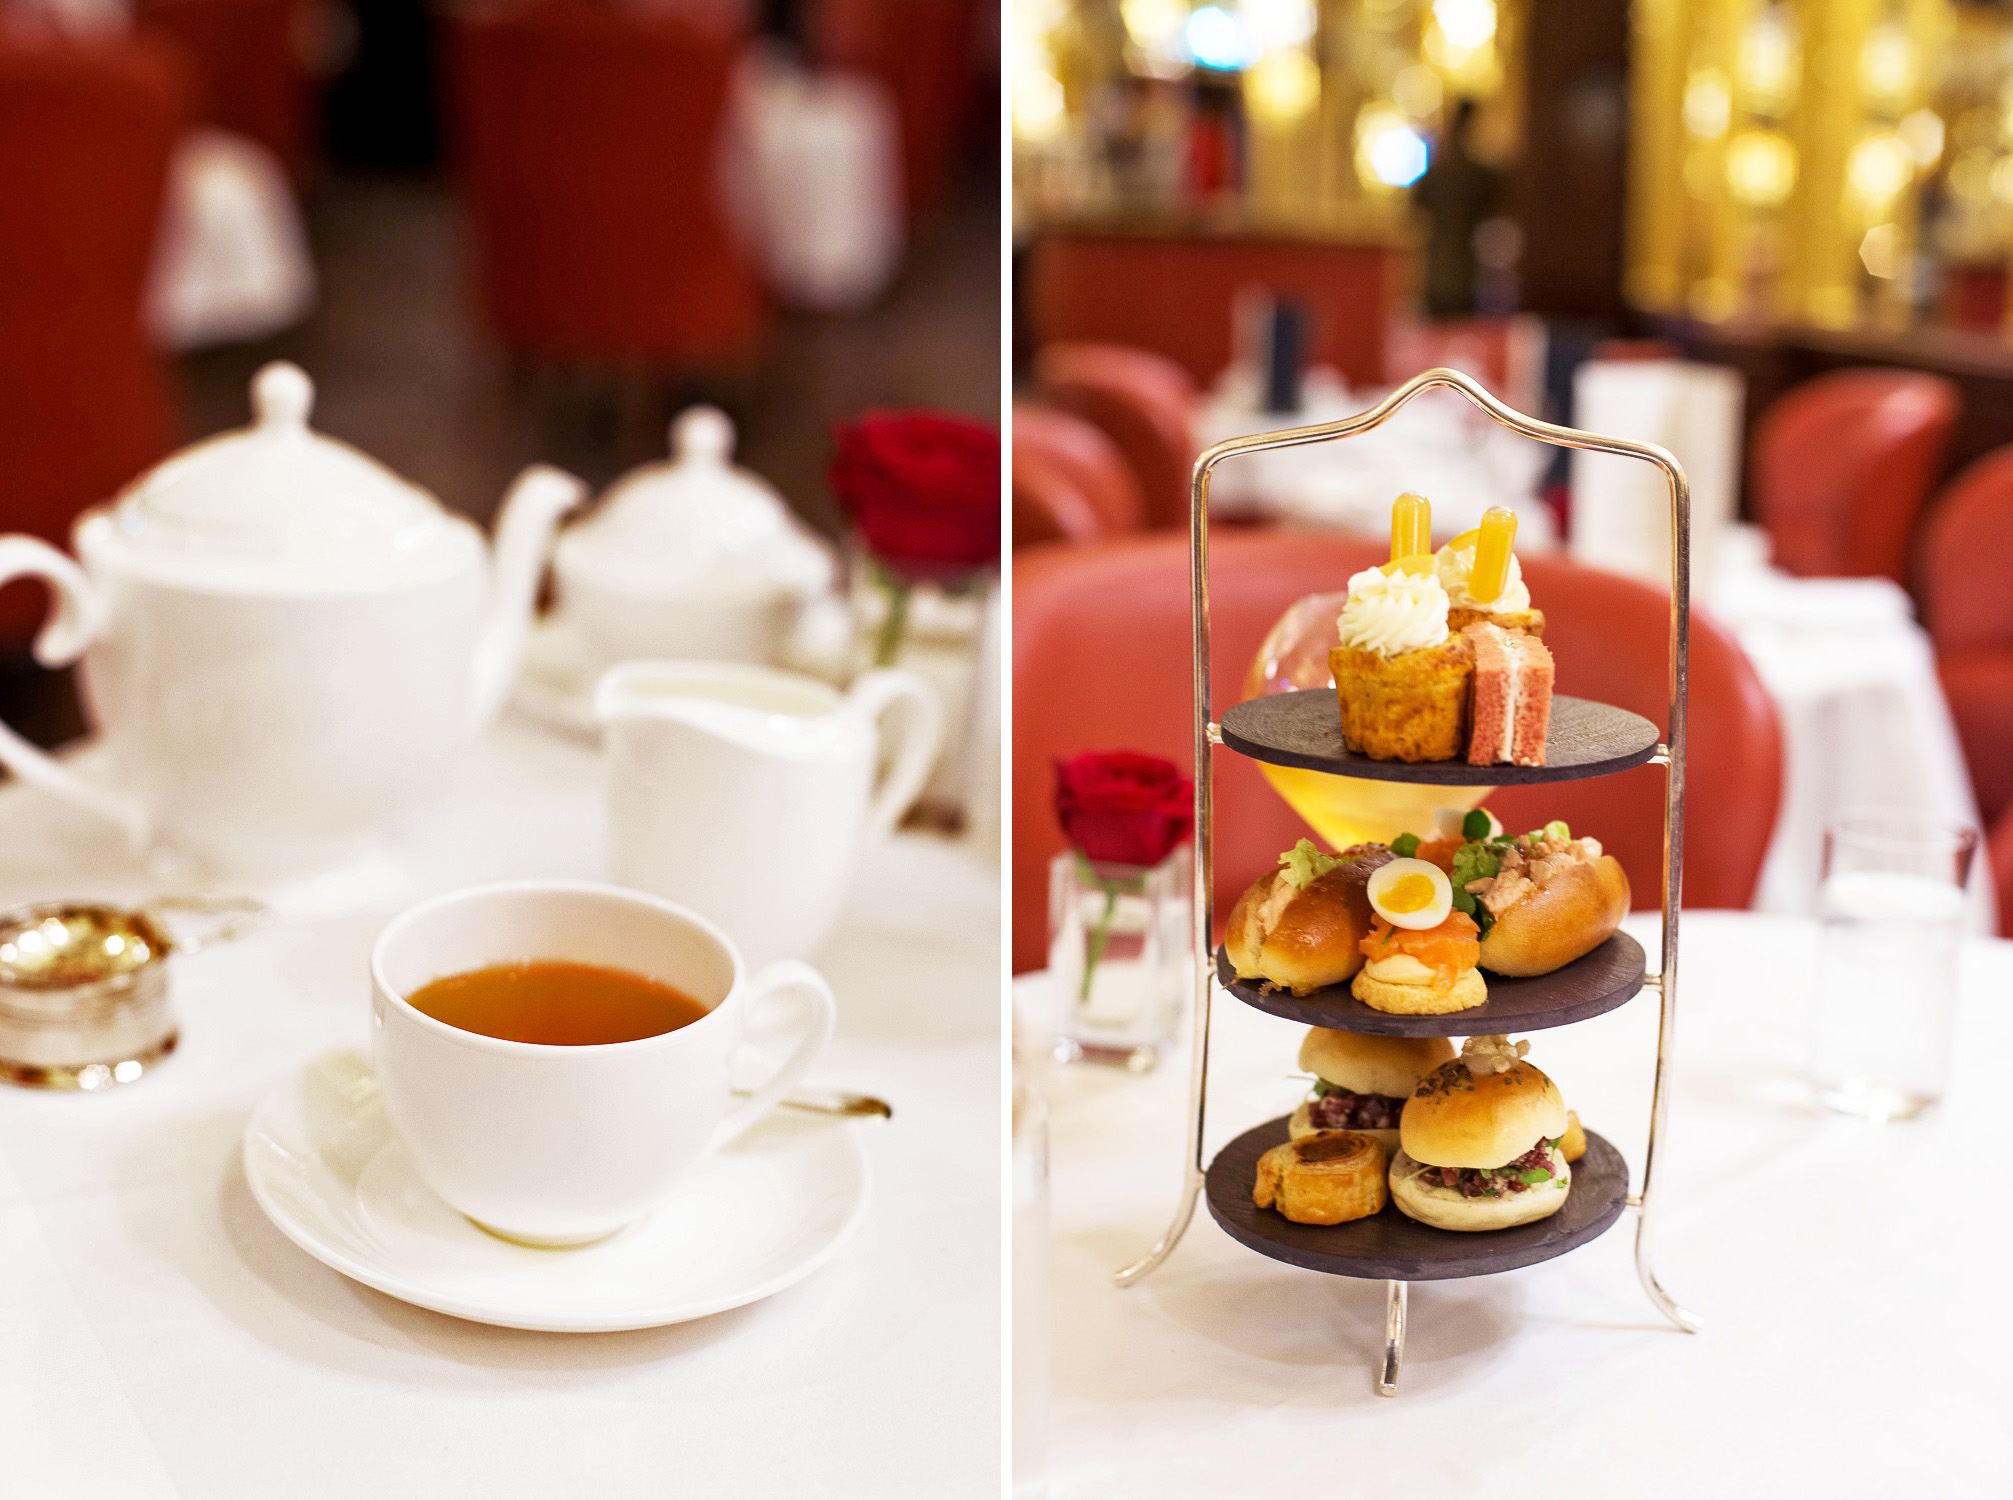 Afternoon-Tea-Hotel-Cafe-Royal-London-3 copy